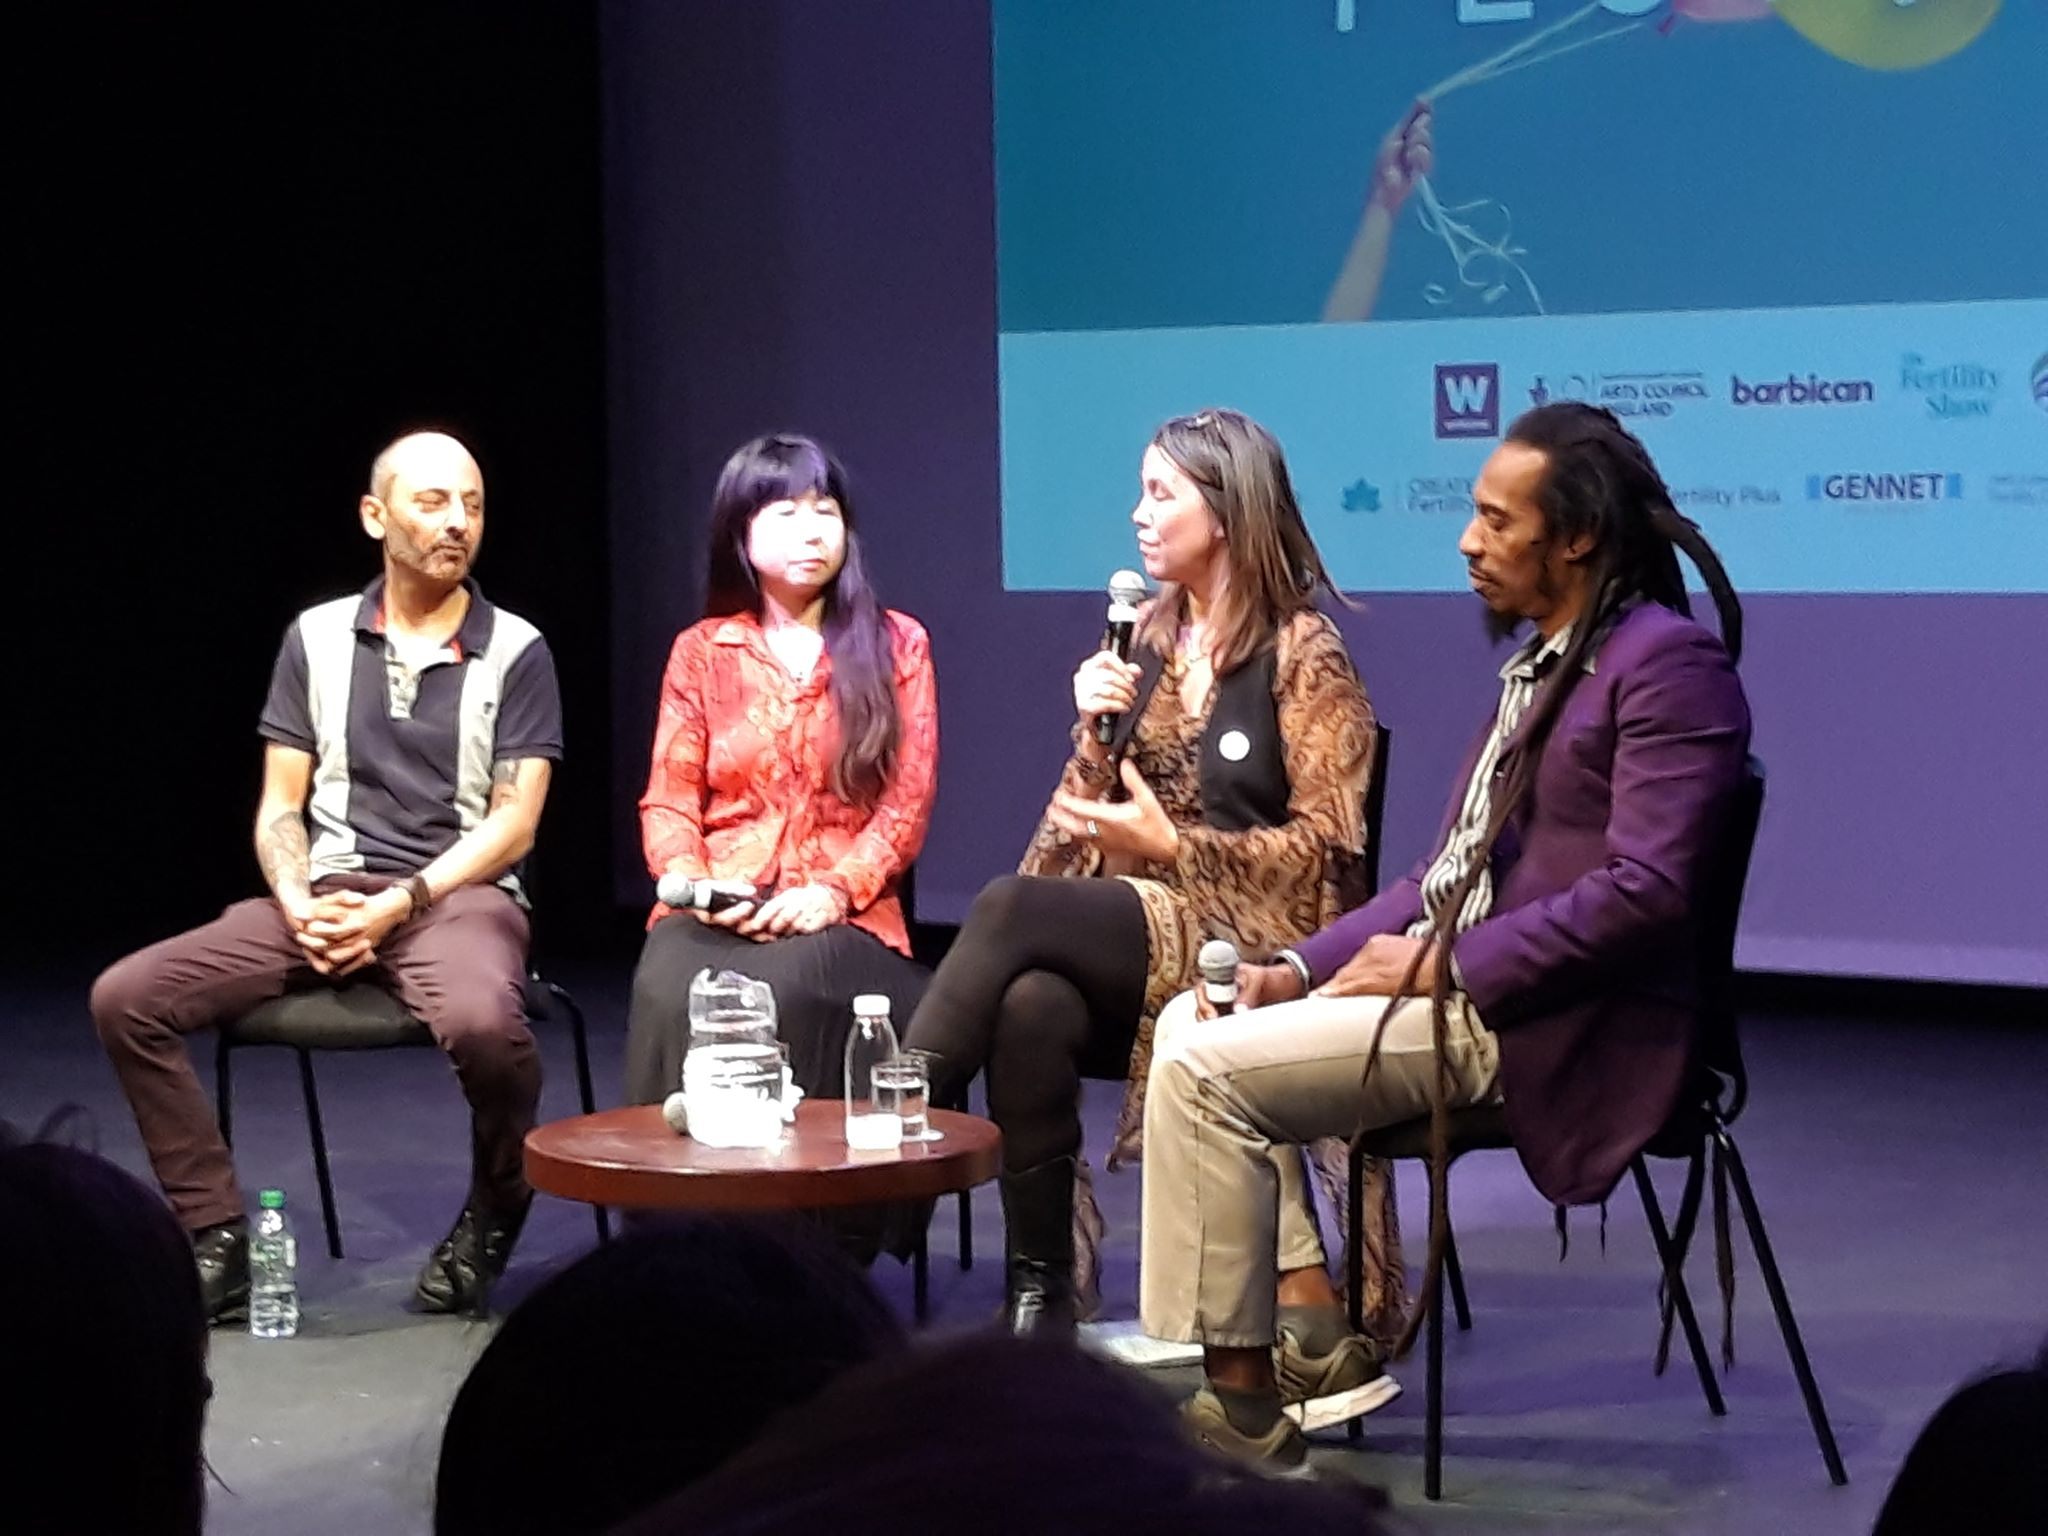 Men Speak discussion panel, left to right: Rod Silvers, Megumi Fieldsend, Jody Day (Gateway Women) and Benjamin Zephaniah.